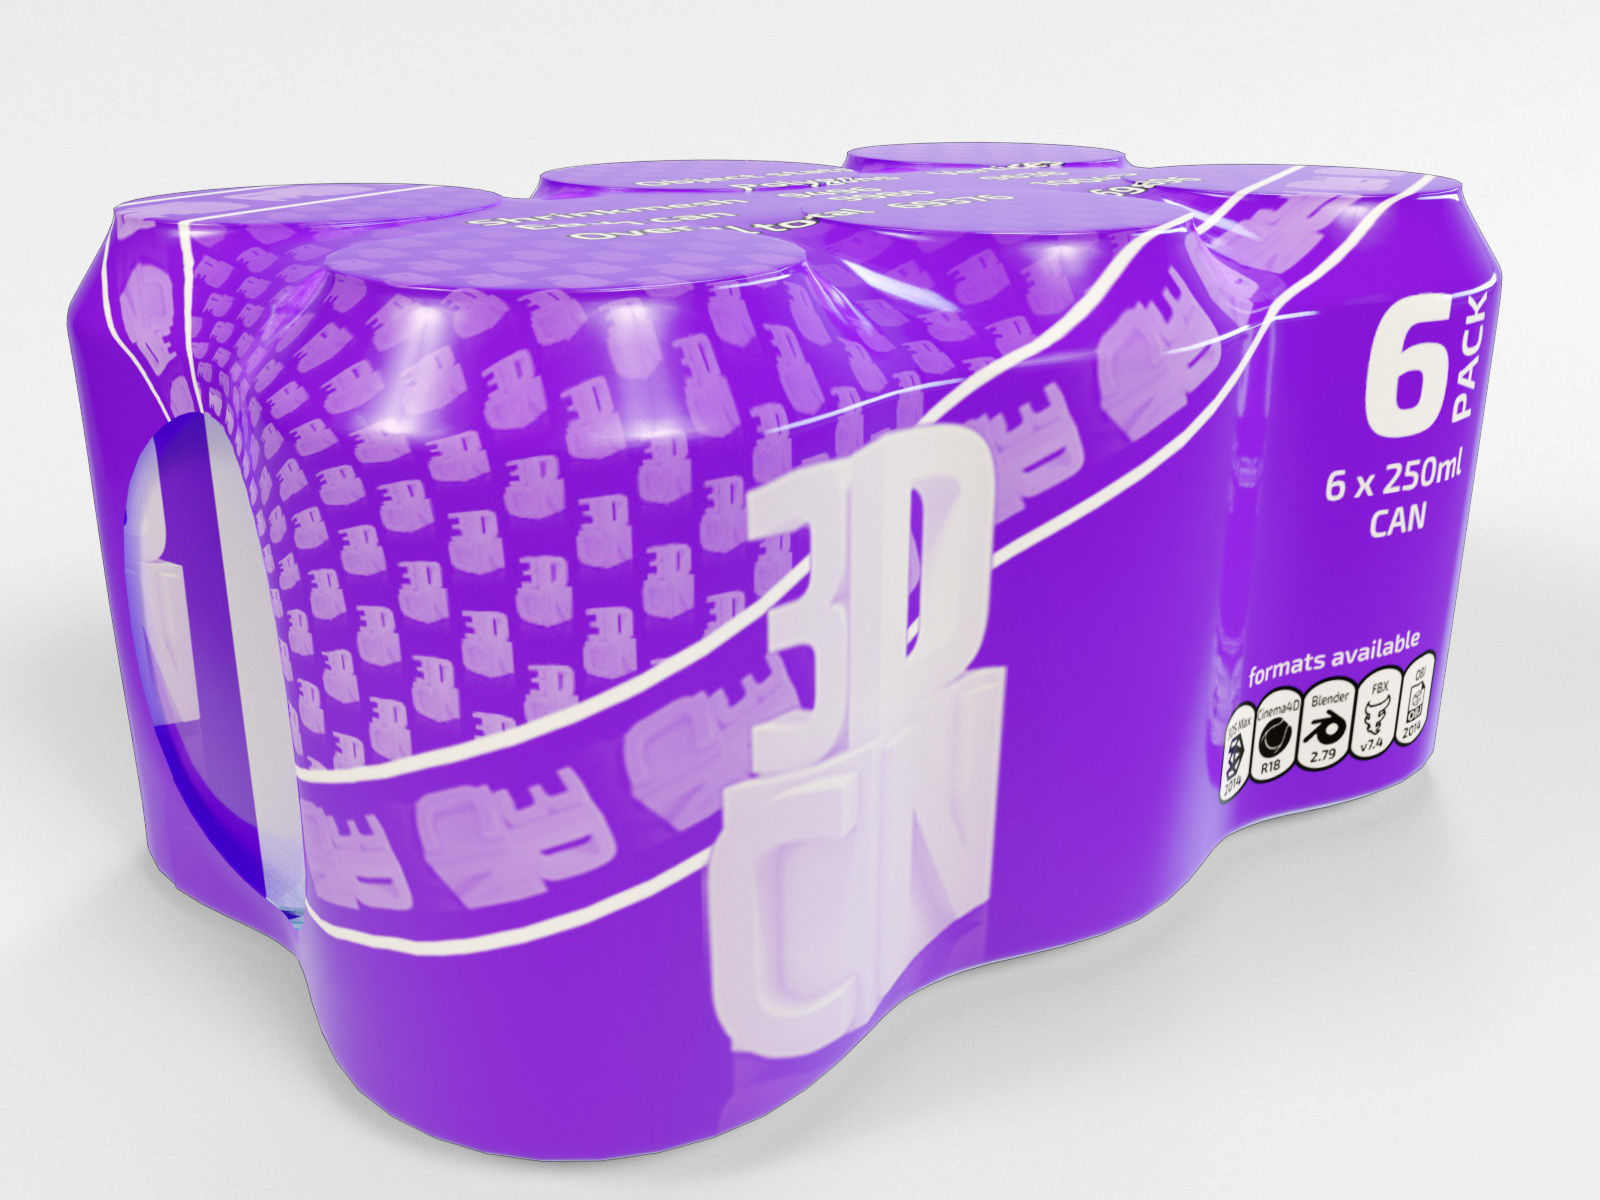 6 pack 250ml beverage cans in a plastic shrinkwrap